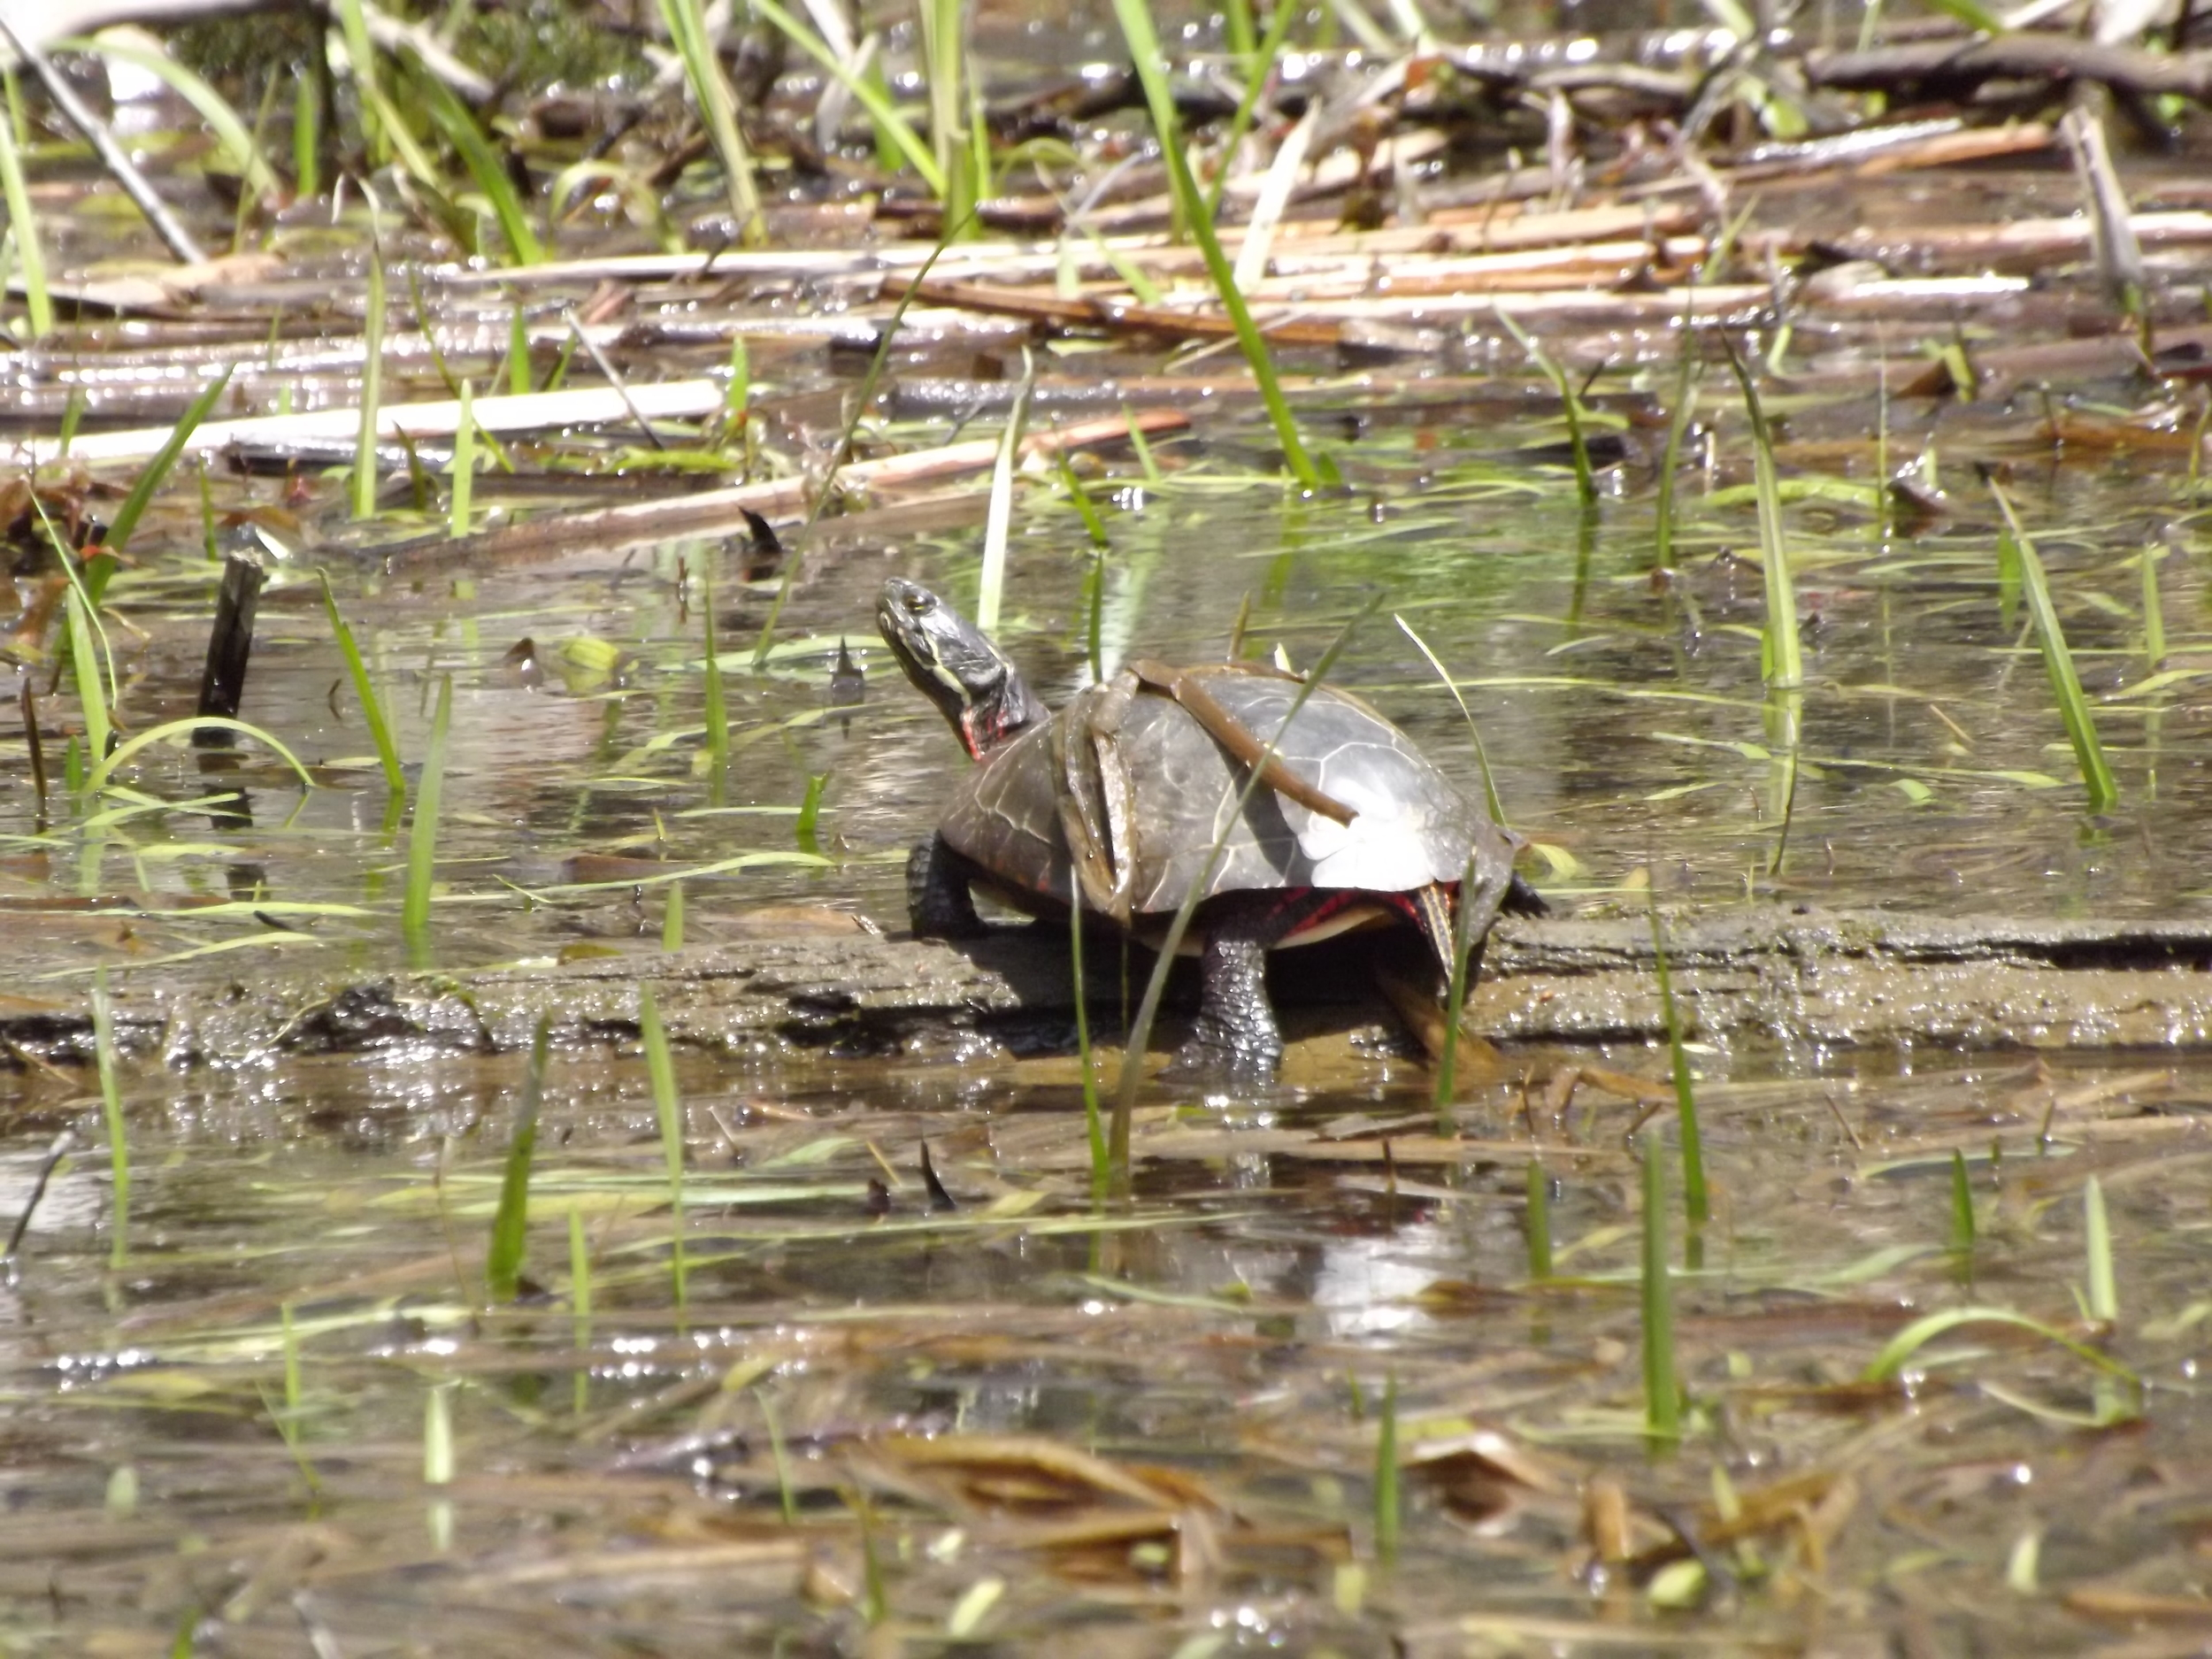 Painted Turtle ( Chrysemys picta ) - Painted Turtles are my favorite subjects to photograph while paddling at Moraine. On sunny days, they line the logs along the shallow bays and coves and we can get quite close before they dive to the safety of the water.